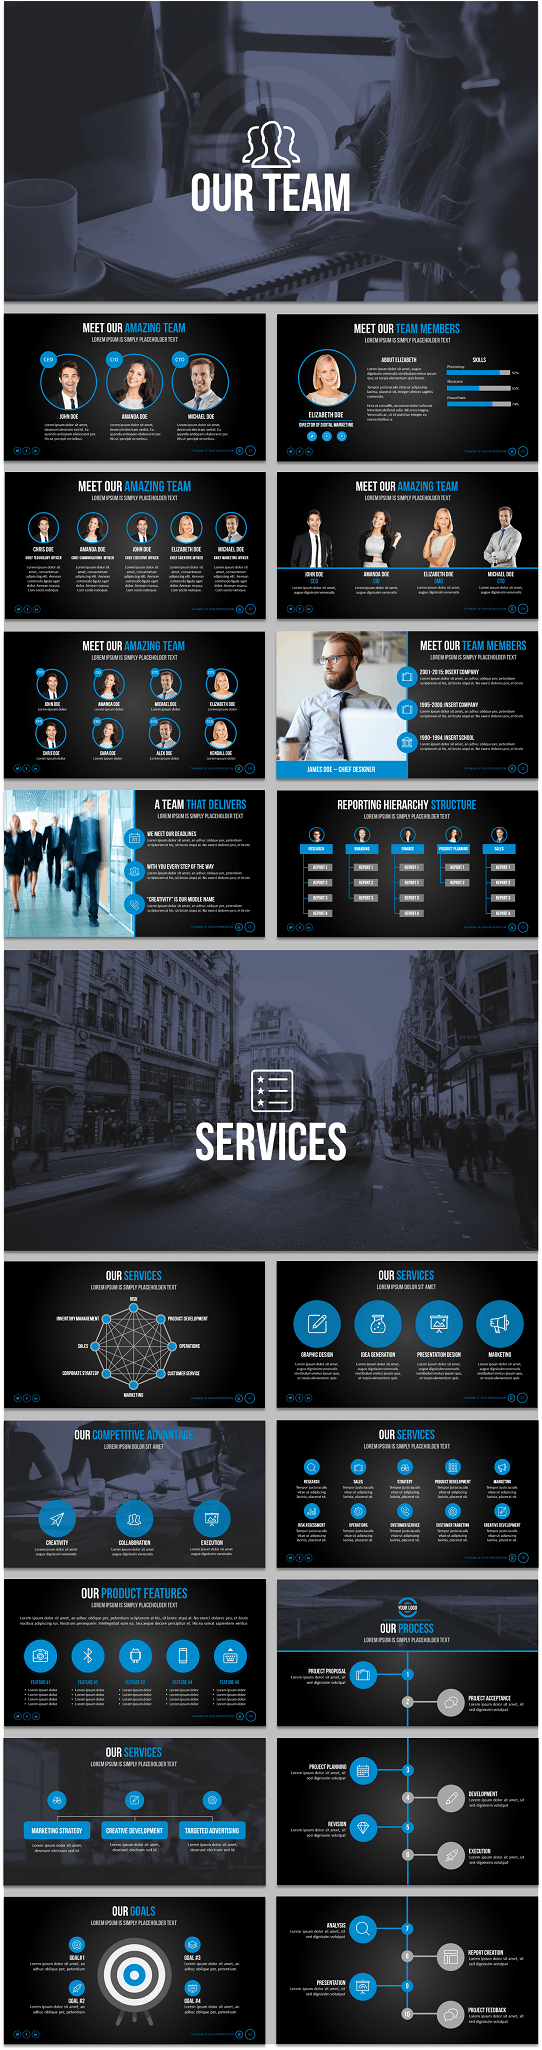 Captivating Cool PowerPoint Template   Professional PowerPoint Template   Influencer  Template